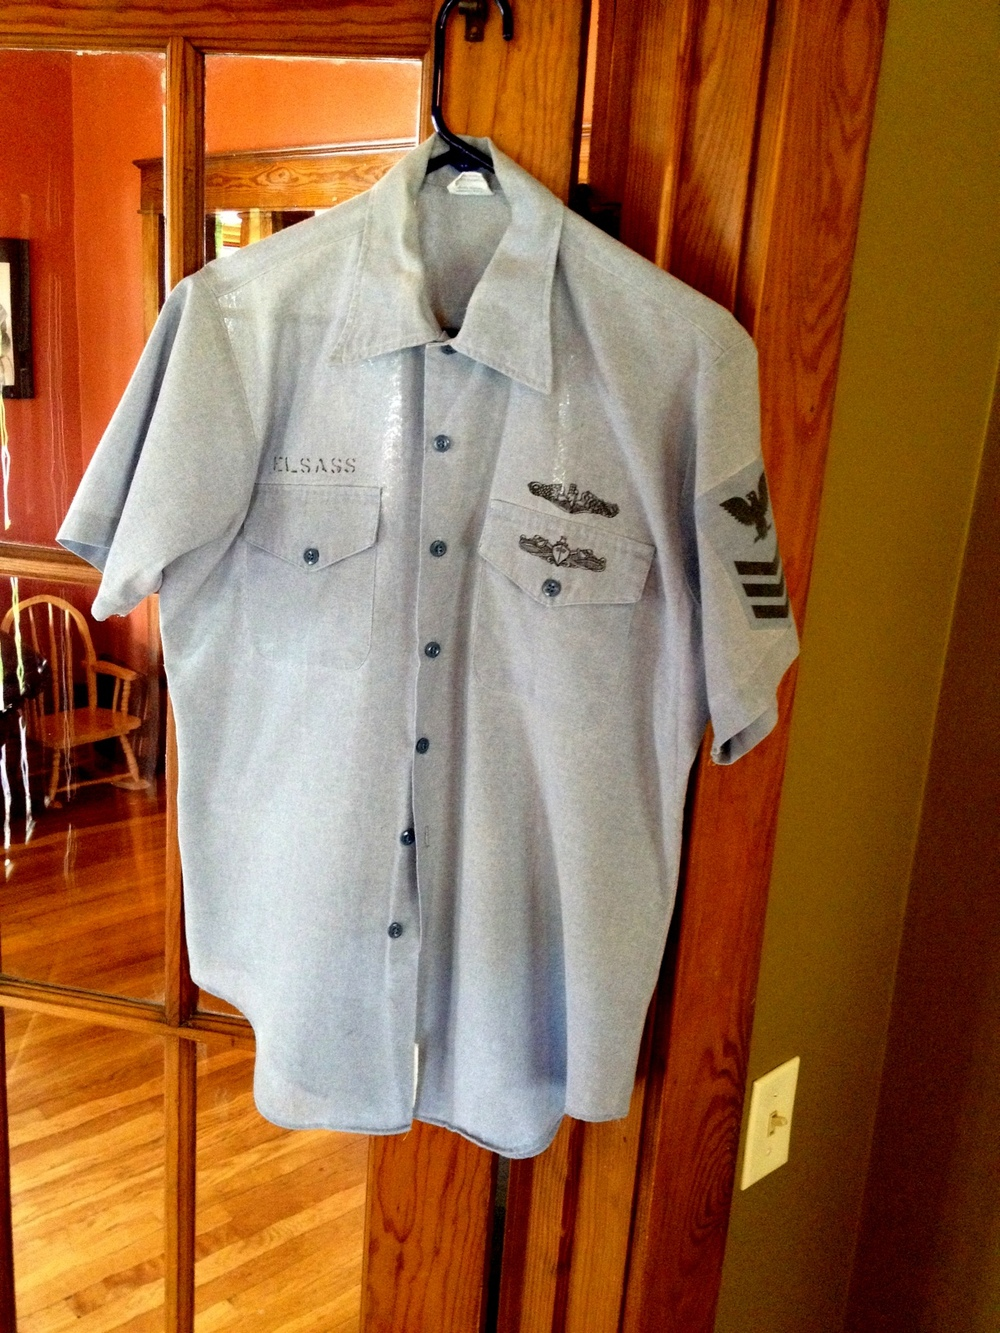 Untouched USN Chambray Shirt